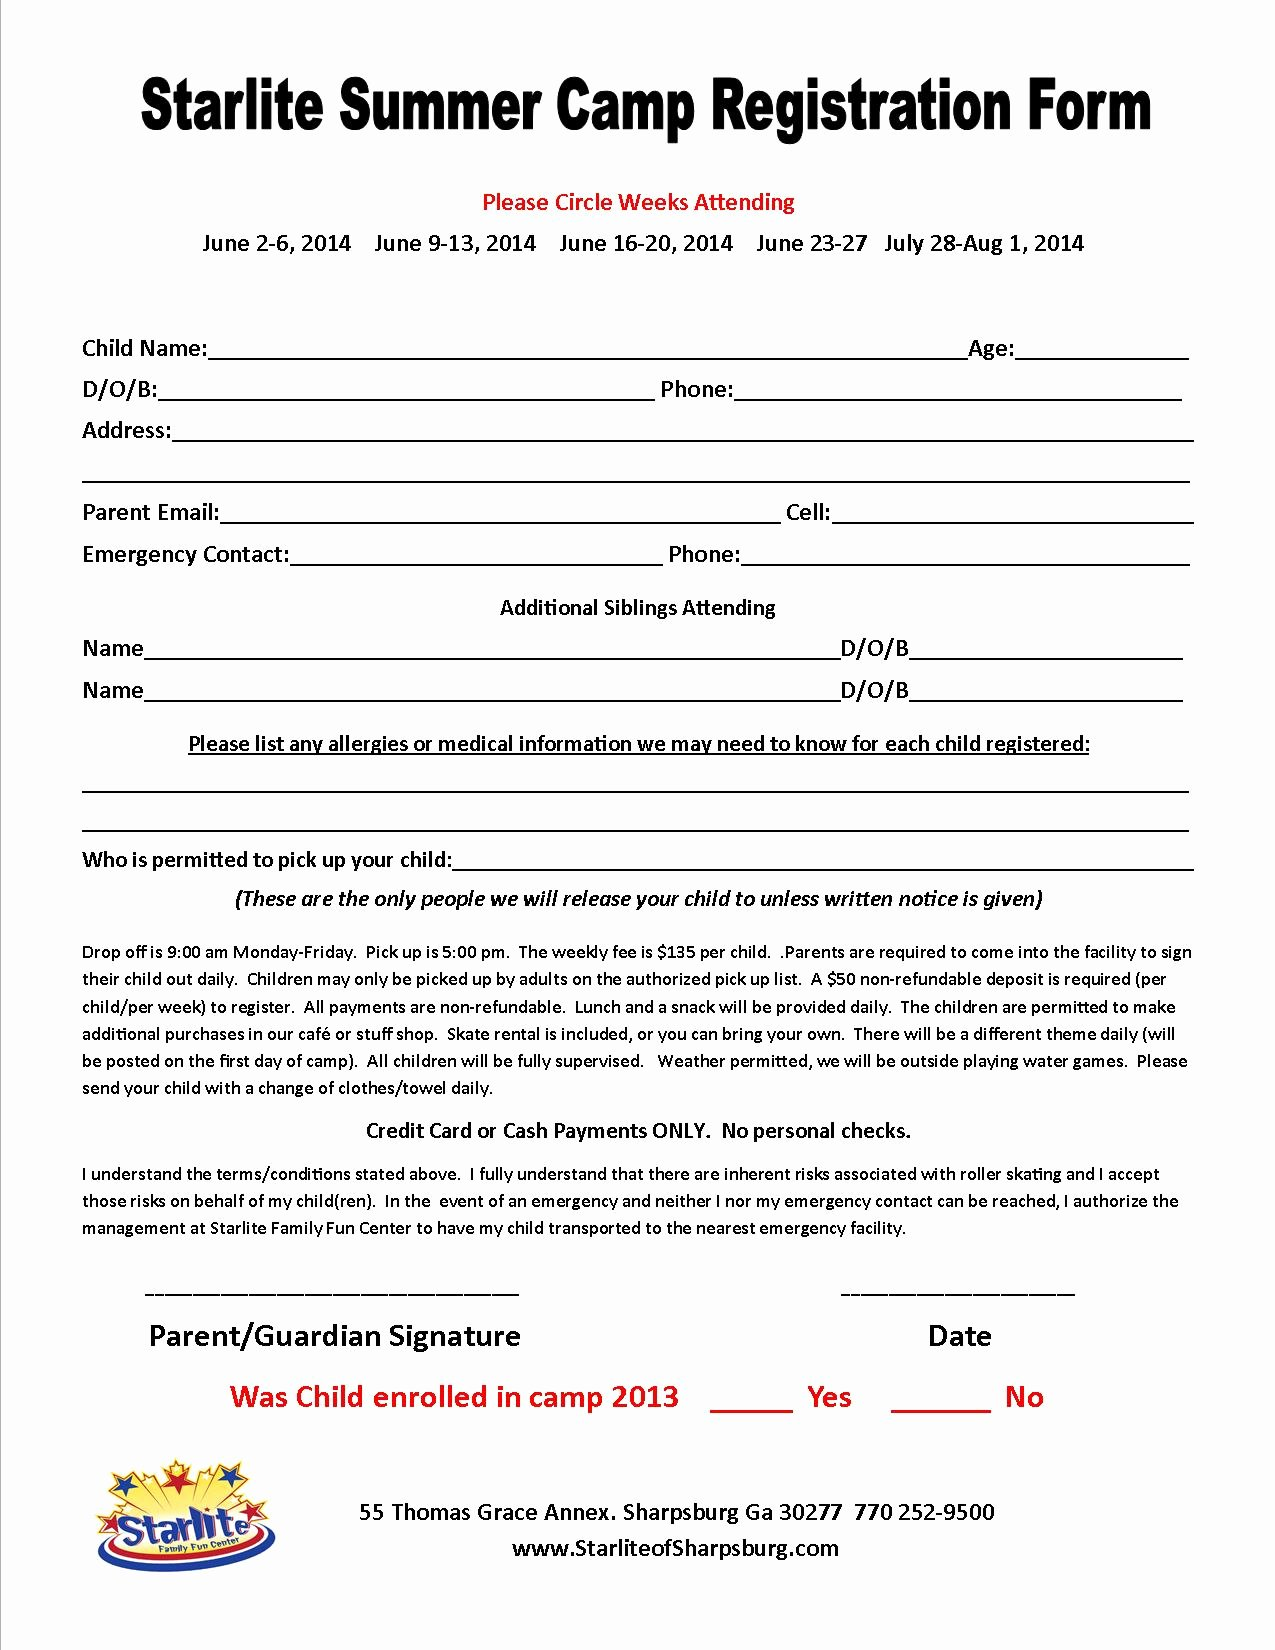 Camp Registration form Template Luxury Great Camp Registration form Template S Free Camp